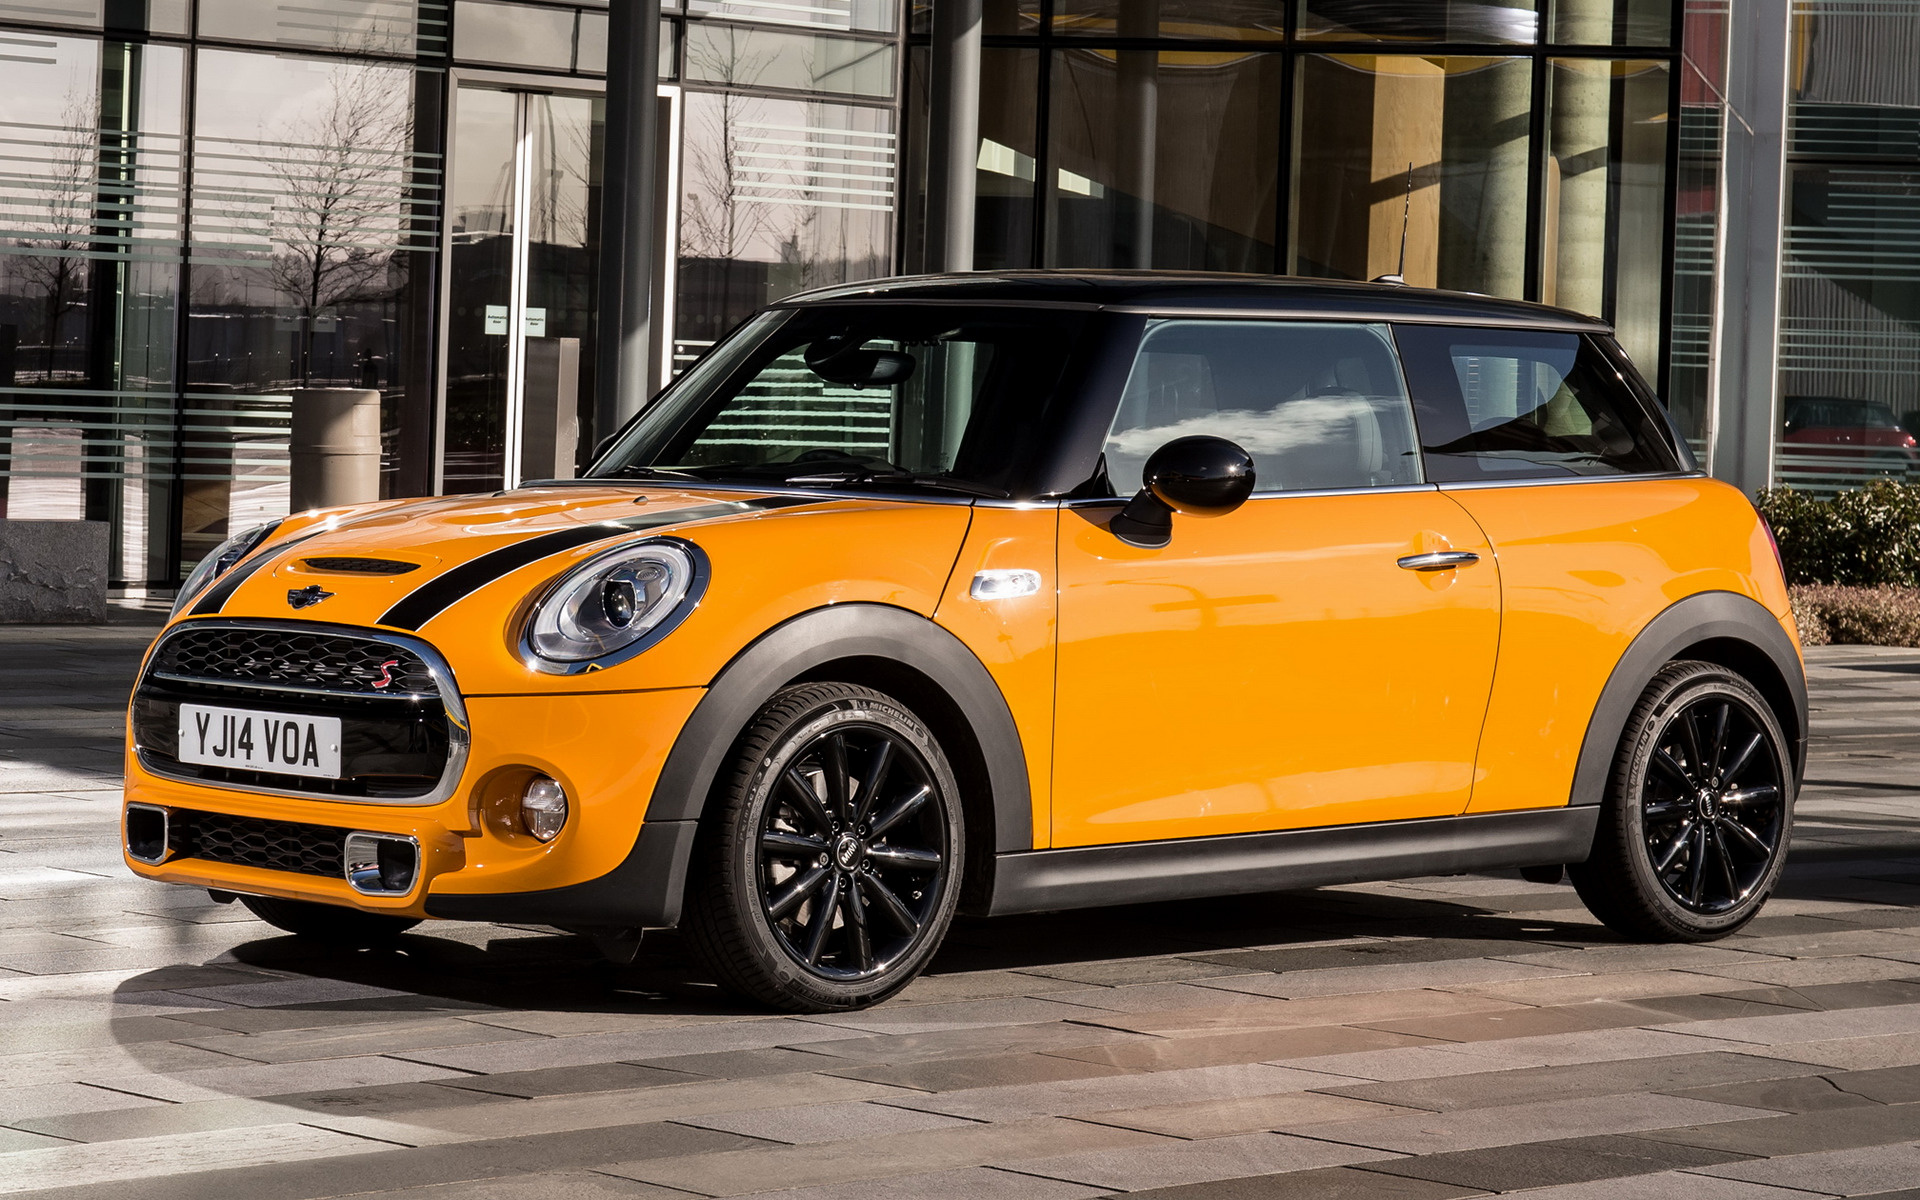 mini cooper s 3 door 2014 uk wallpapers and hd images car pixel. Black Bedroom Furniture Sets. Home Design Ideas